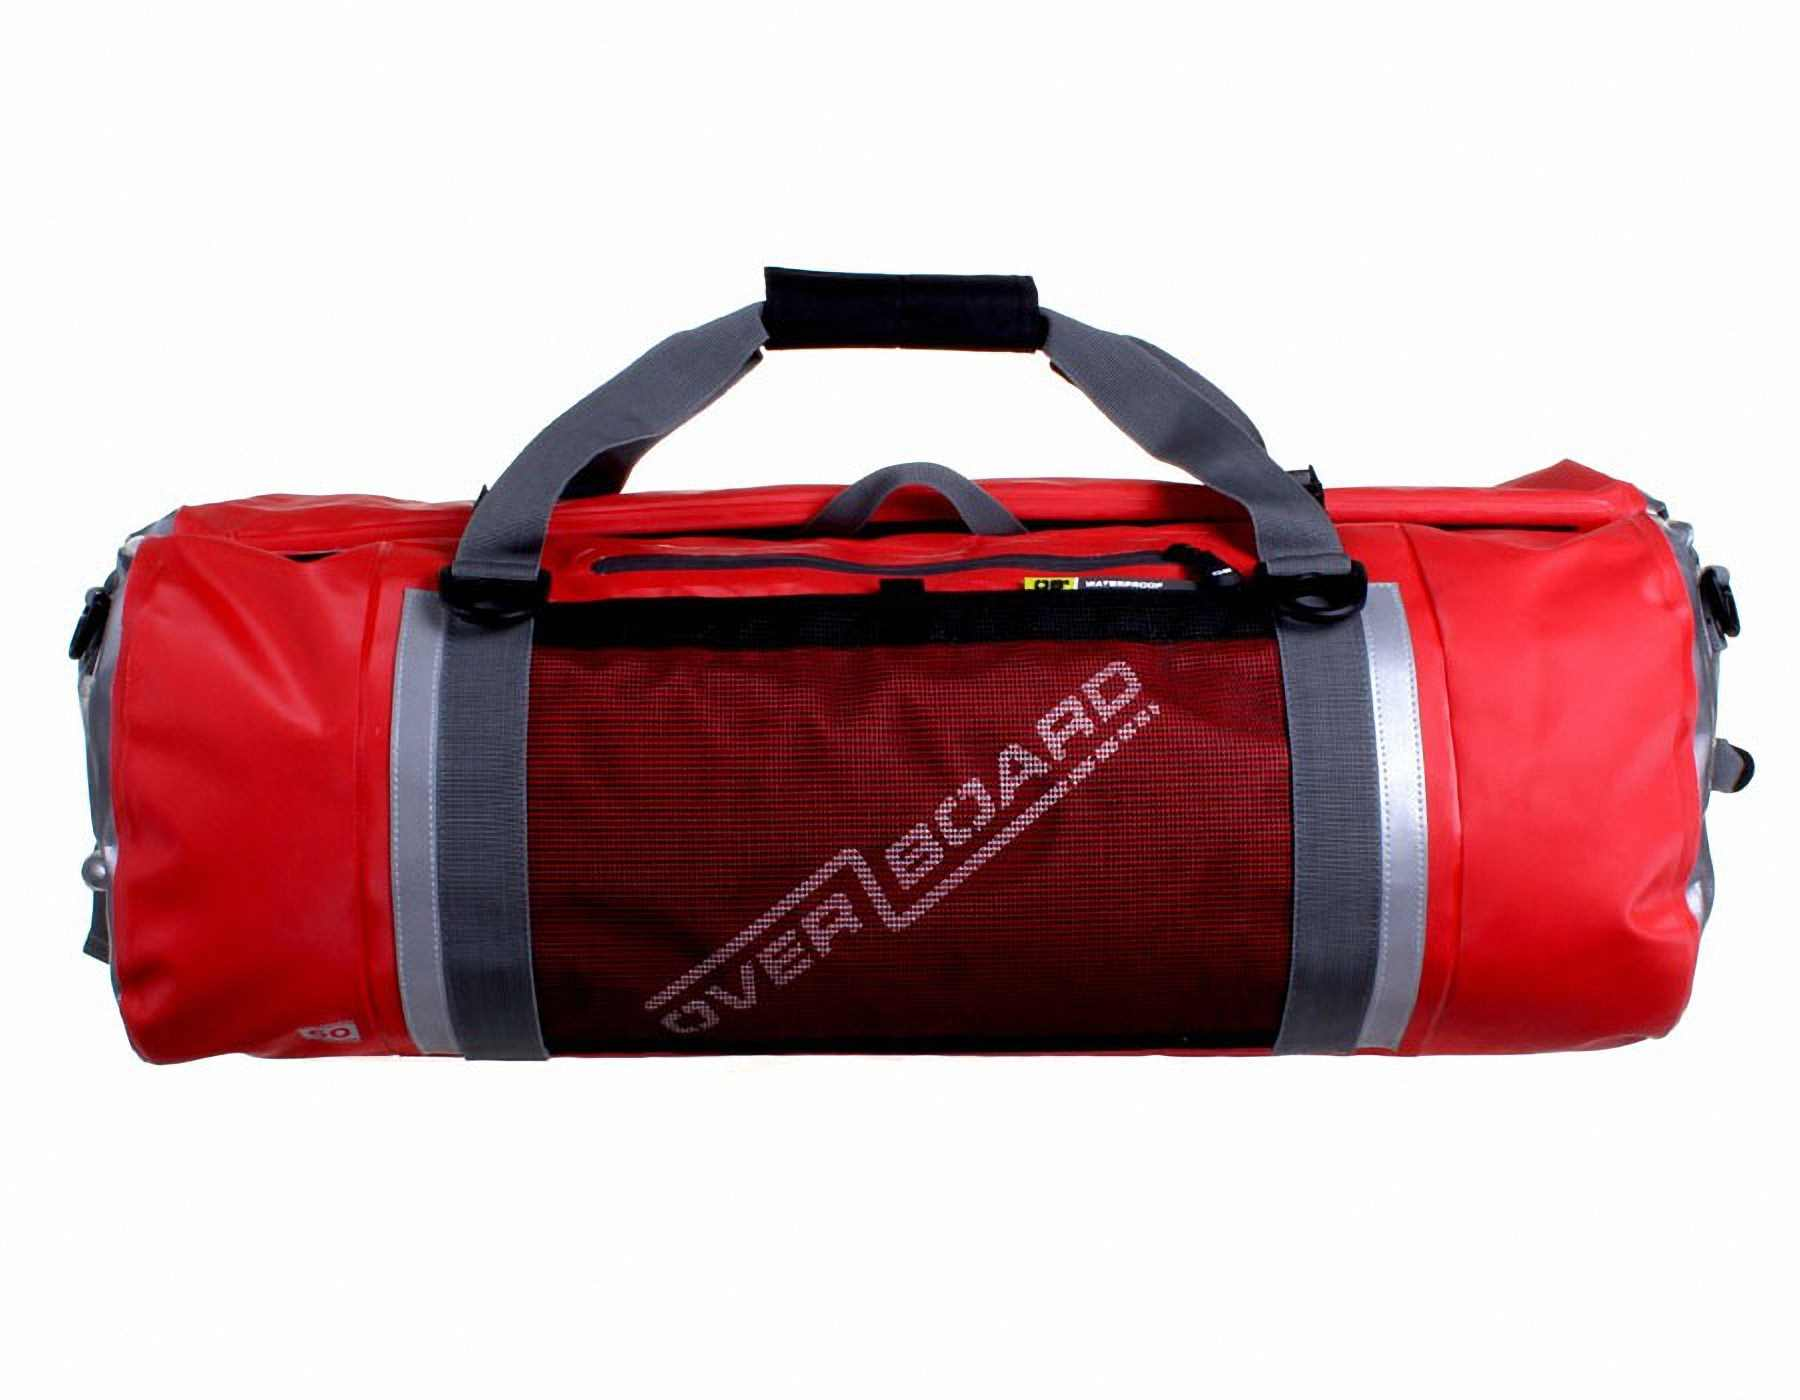 Водонепроницаемая сумка OverBoard OB1154R - Pro-Sports Waterproof Duffel Bag - 60 литров.  Фото 1